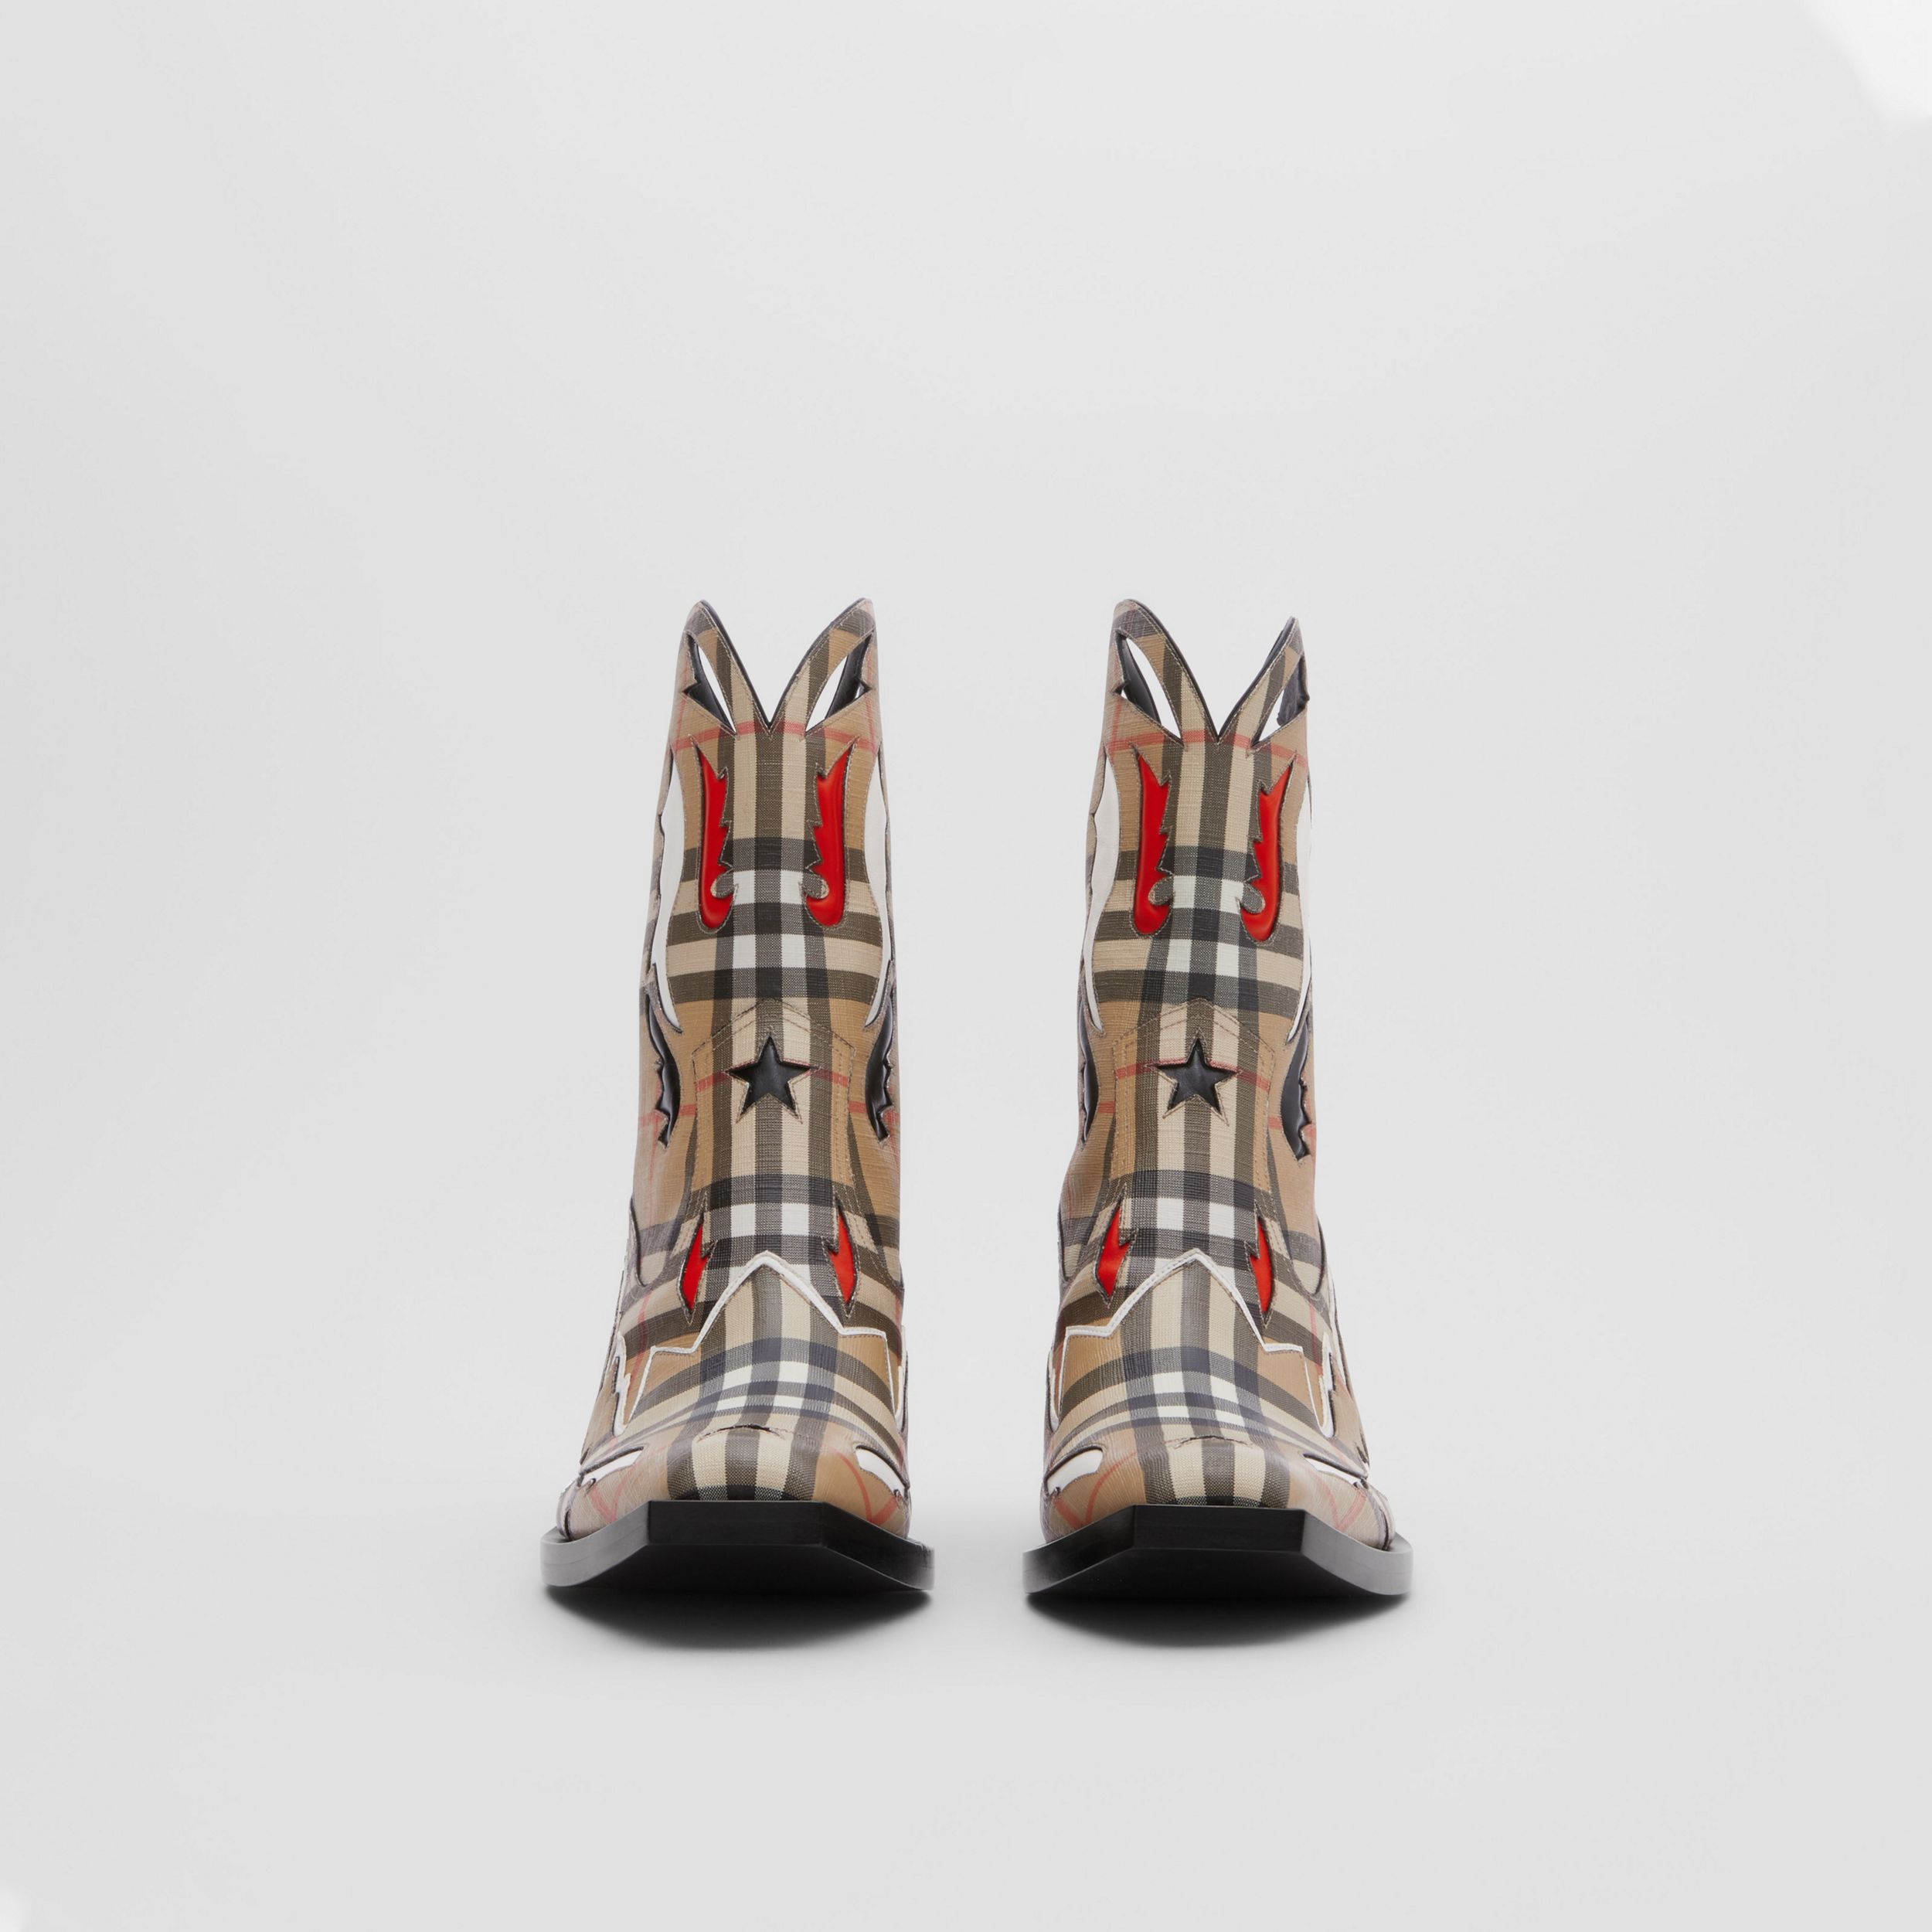 Topstitch Appliqué Vintage Check E-canvas Boots in Archive Beige - Women | Burberry United States - 4